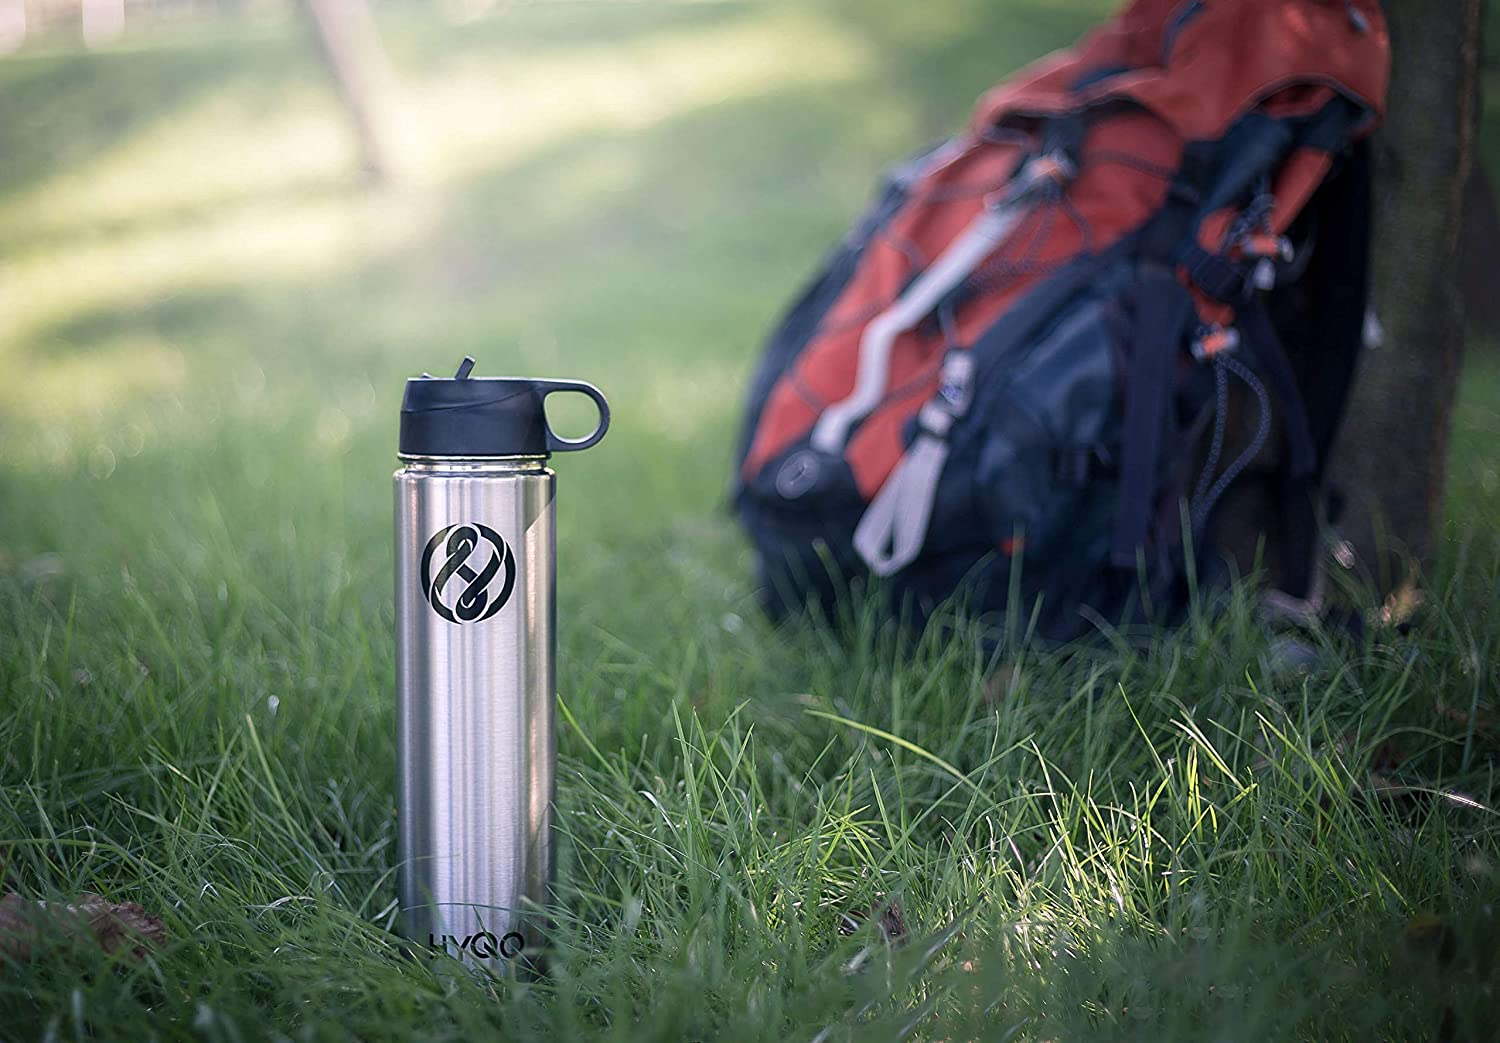 HYQO Insulated Stainless Steel Water Bottle Cold 48 Hrs Hot 24 Hrs Extra Flip /& Drink Lid 26 Oz Double Wall Vacuum Leak Proof Metal Water Bottle with Straw